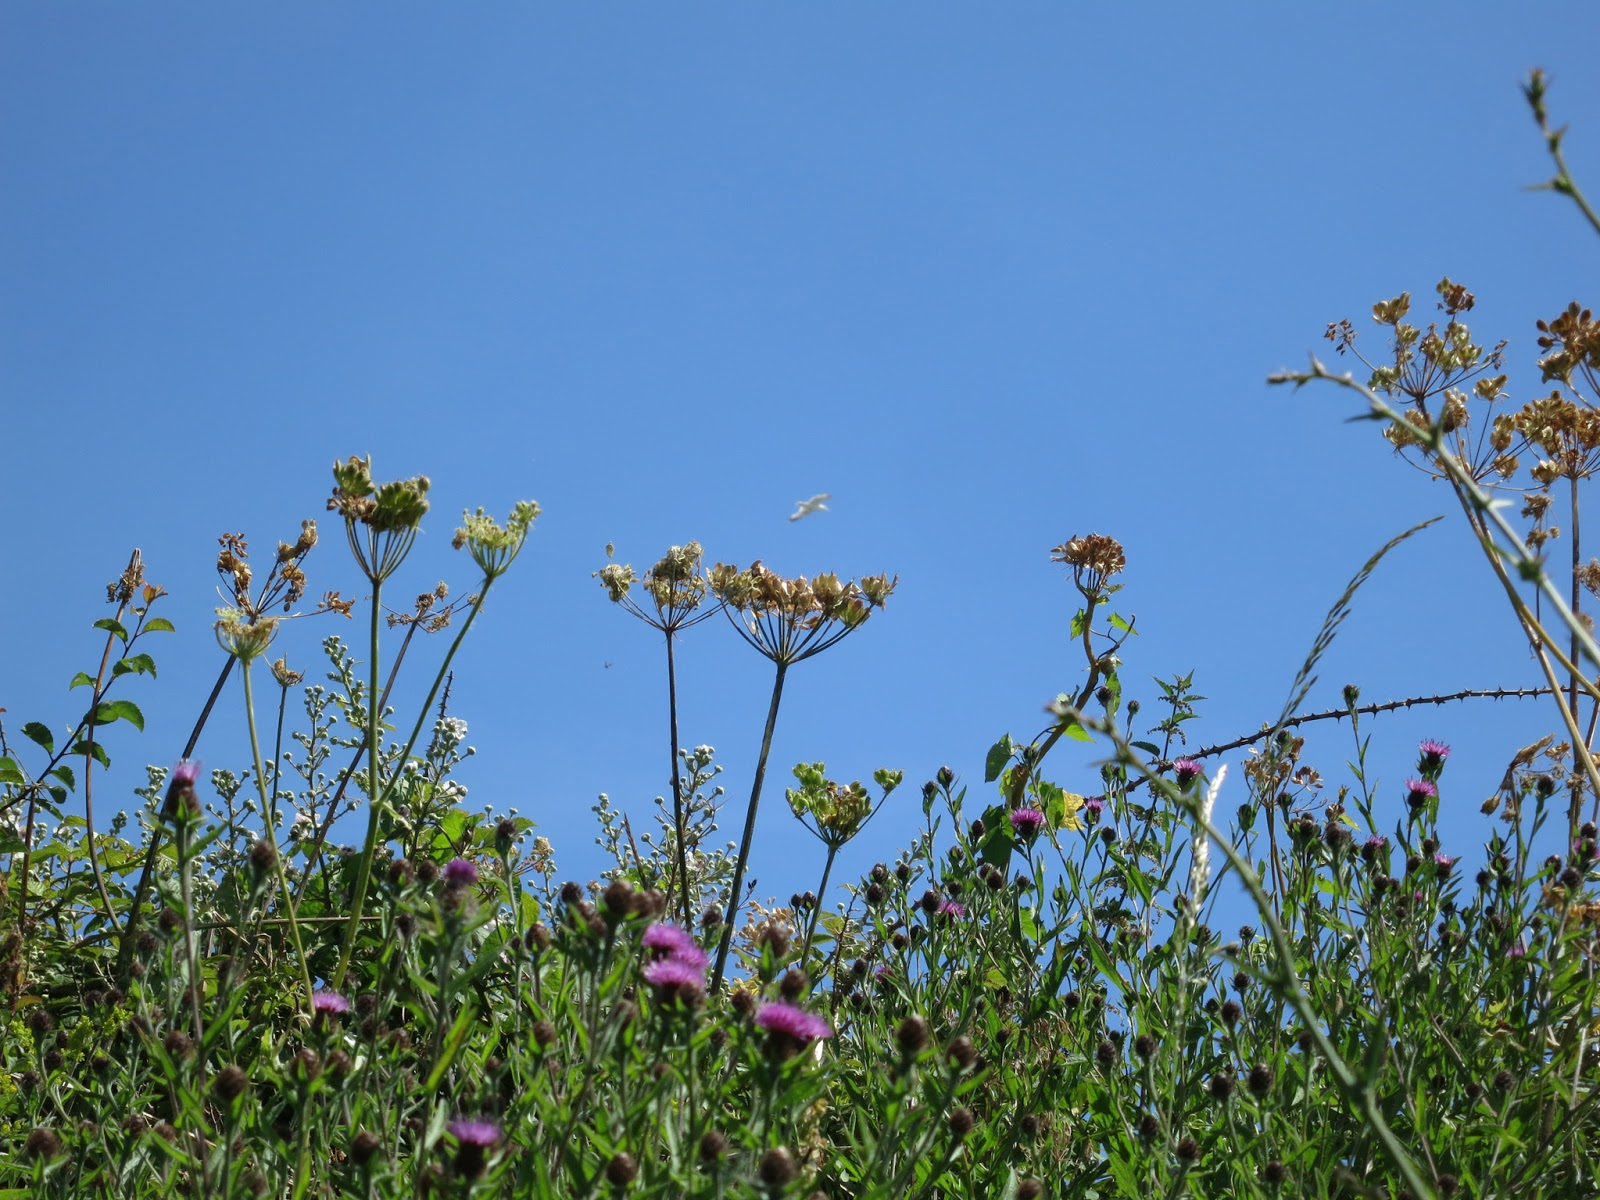 White, umbelliferous flowers turning to seed against a clear blue sky with a single gull